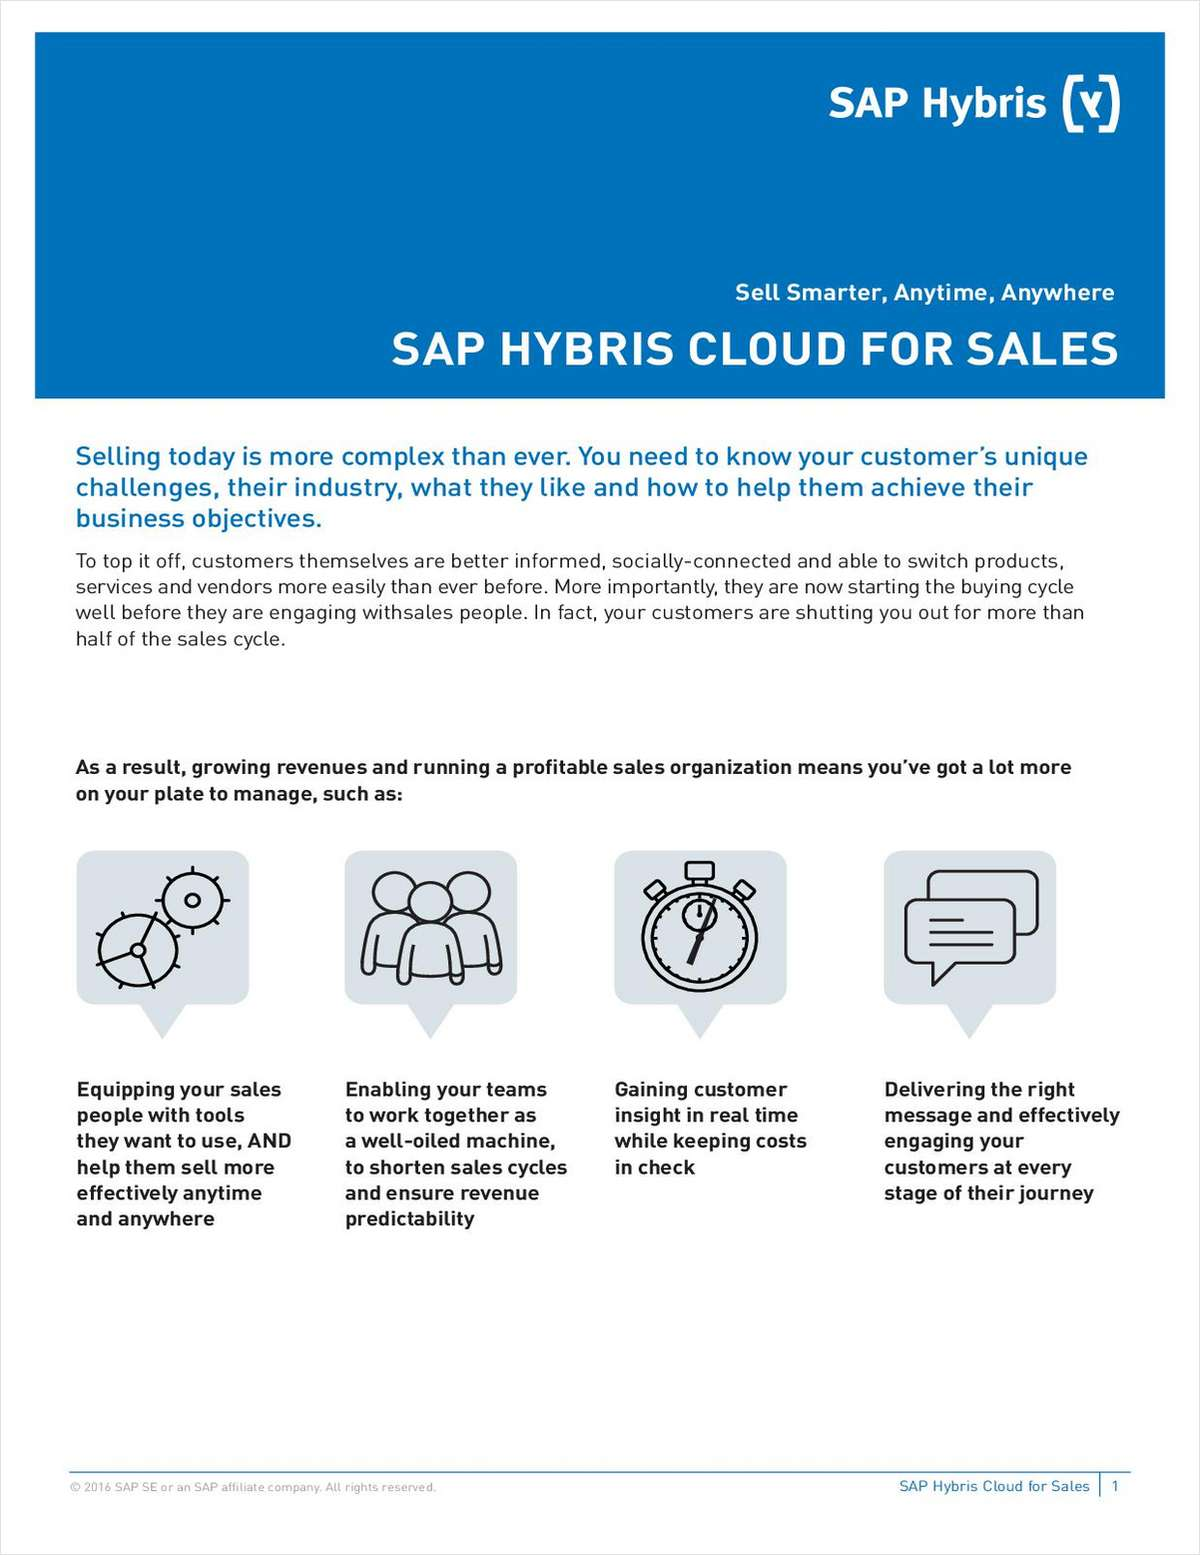 Sell Smarter, Anytime, Anywhere: SAP Hybris Cloud For Sales